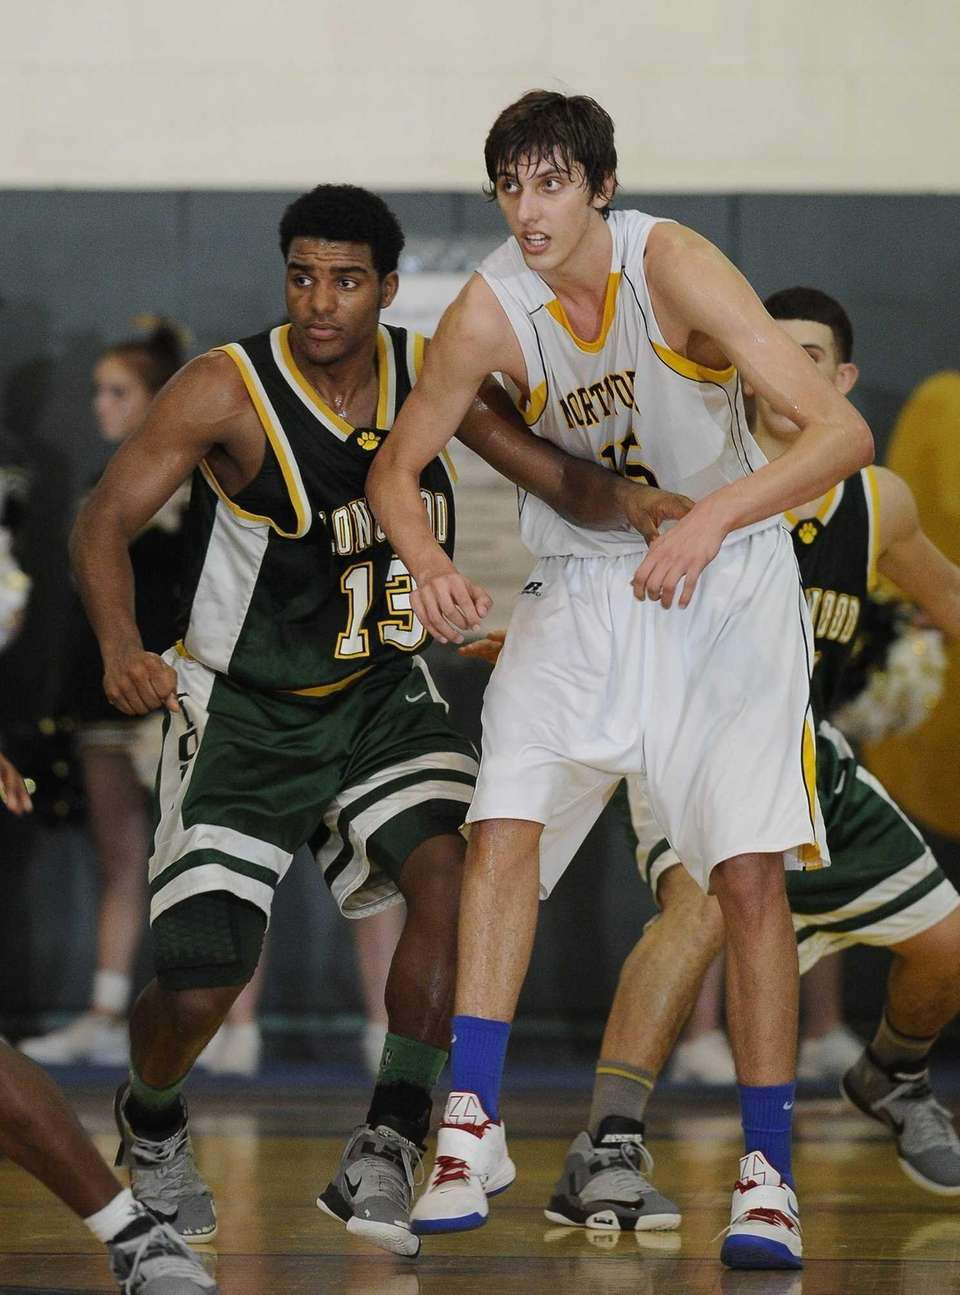 Northport's Luke Petrasek is defended by Longwood's Stephon